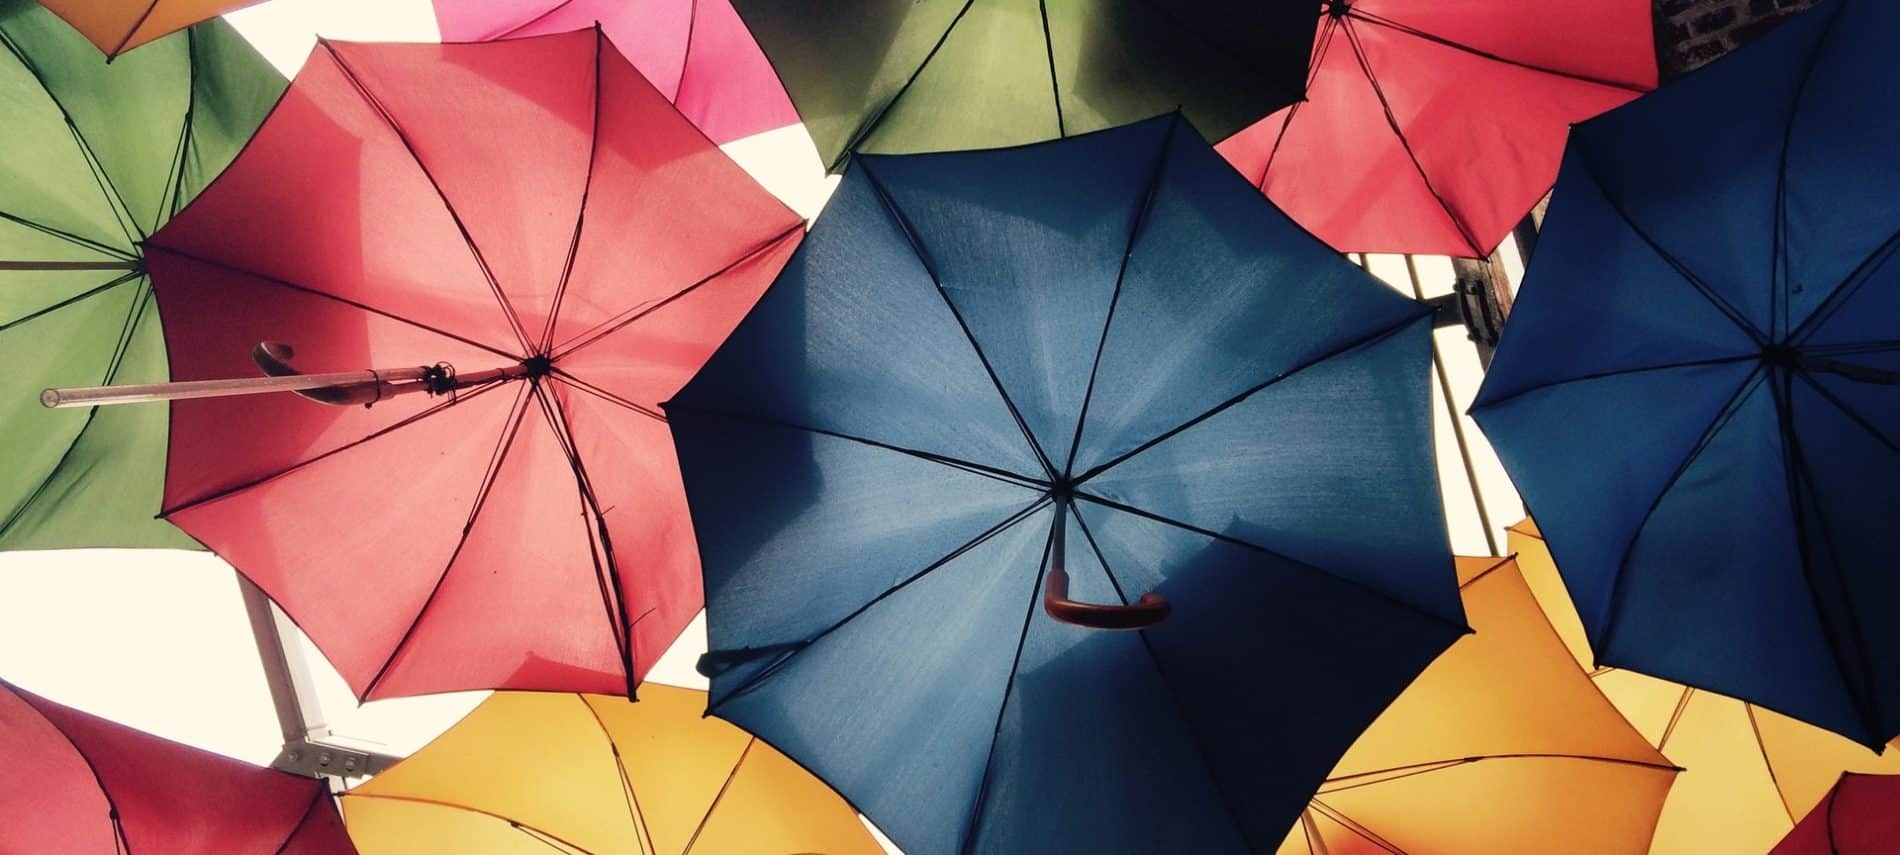 camera looking up at multiple multicolored open umbrellas with sky in the background